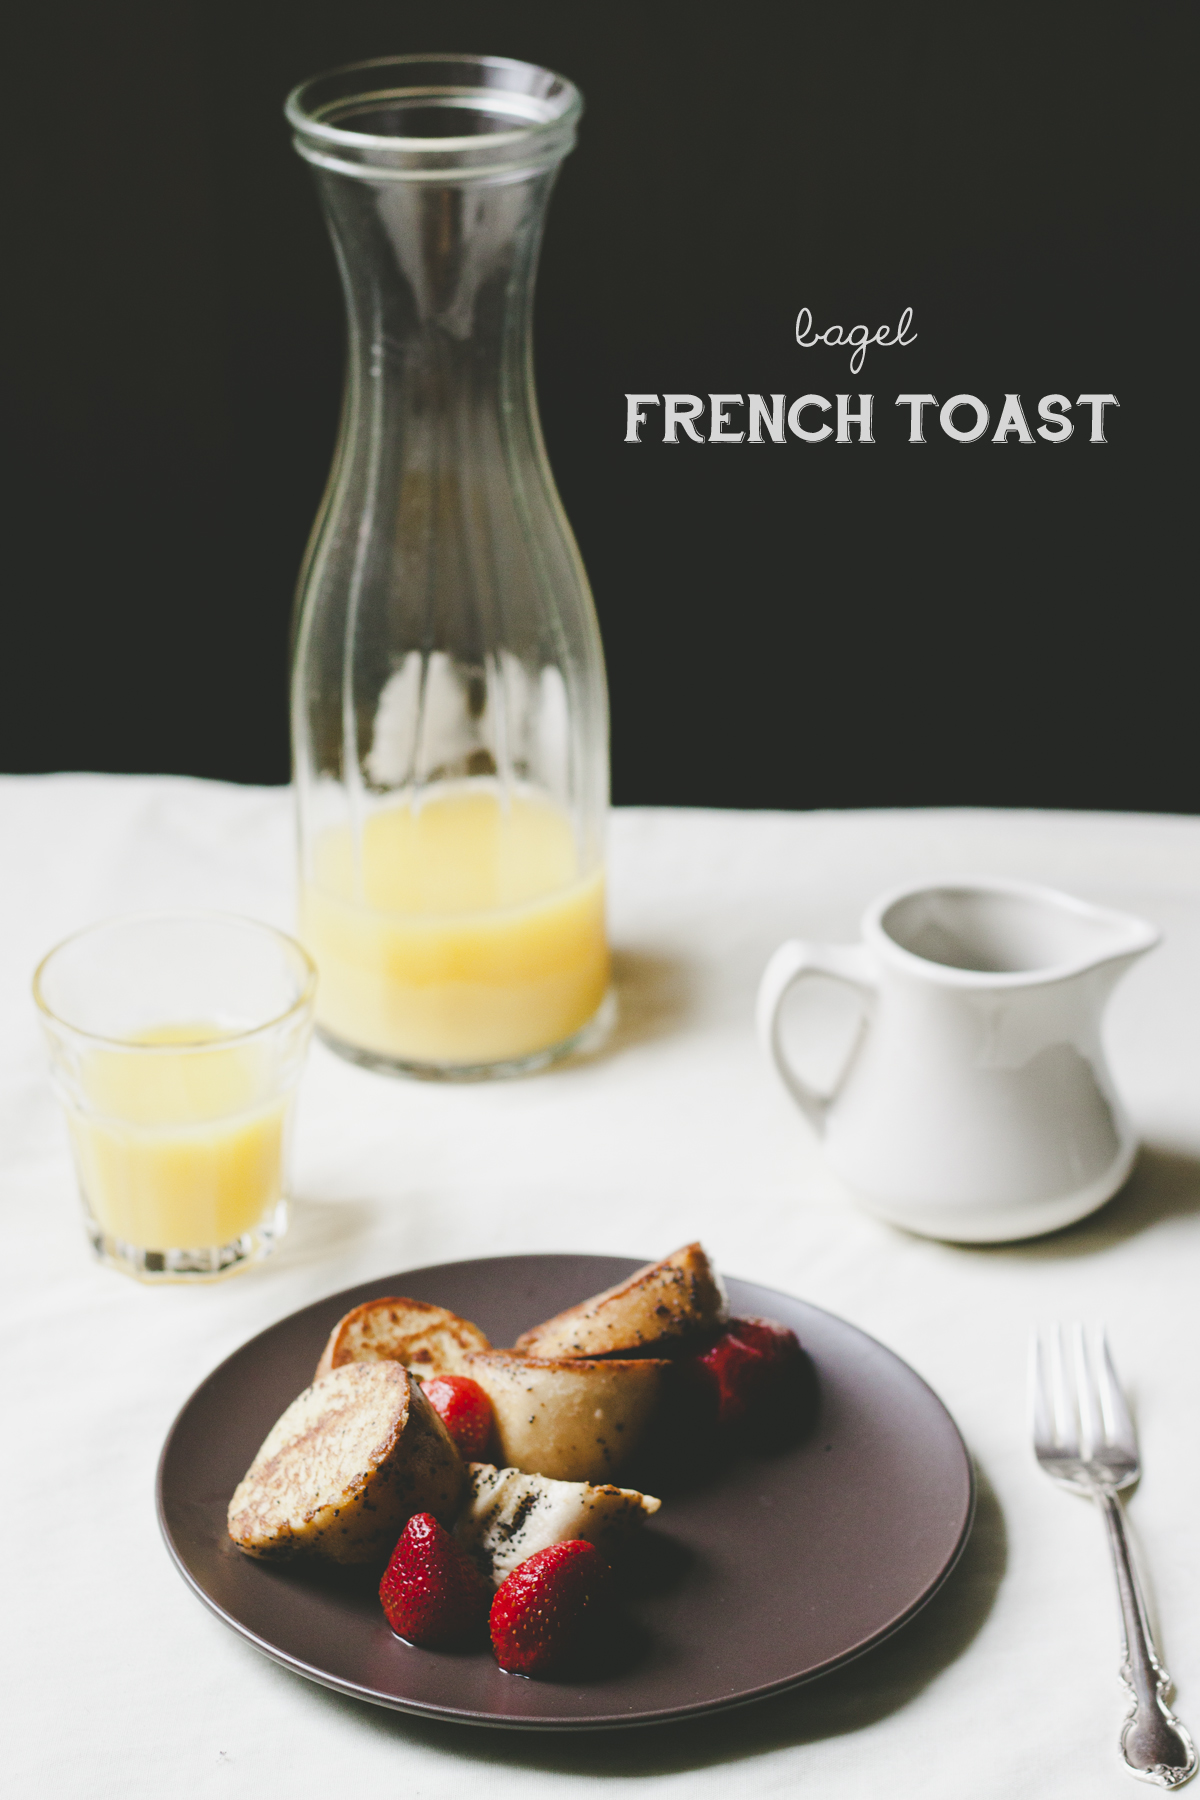 1304-bagel-french-toast-cover.jpg